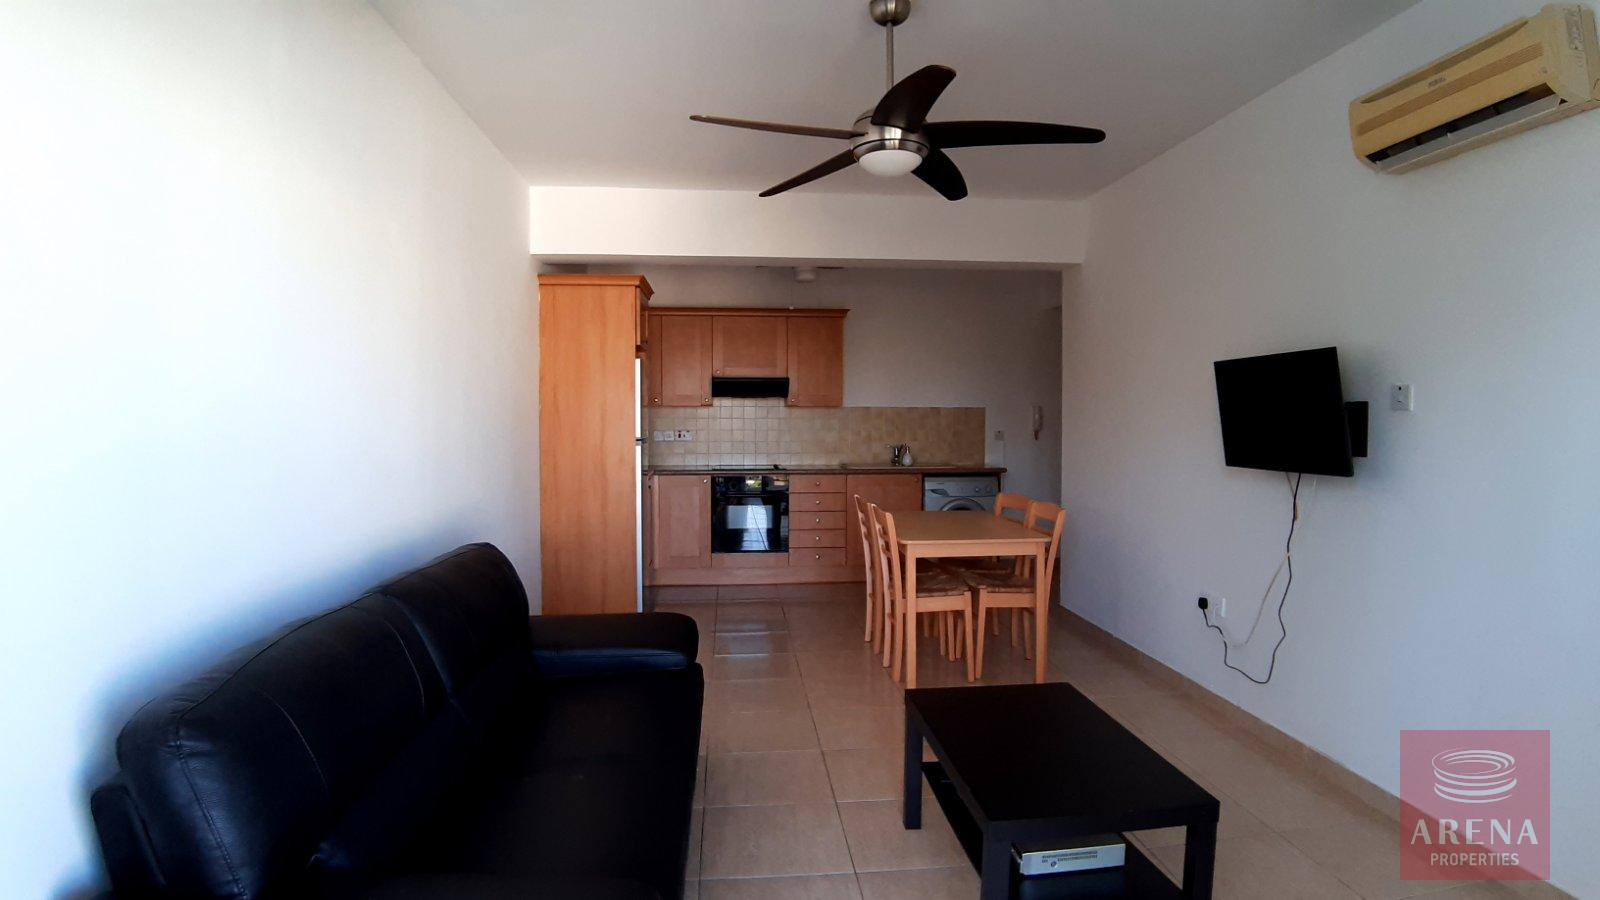 2 Bed Apt for rent in Paralimni - living area